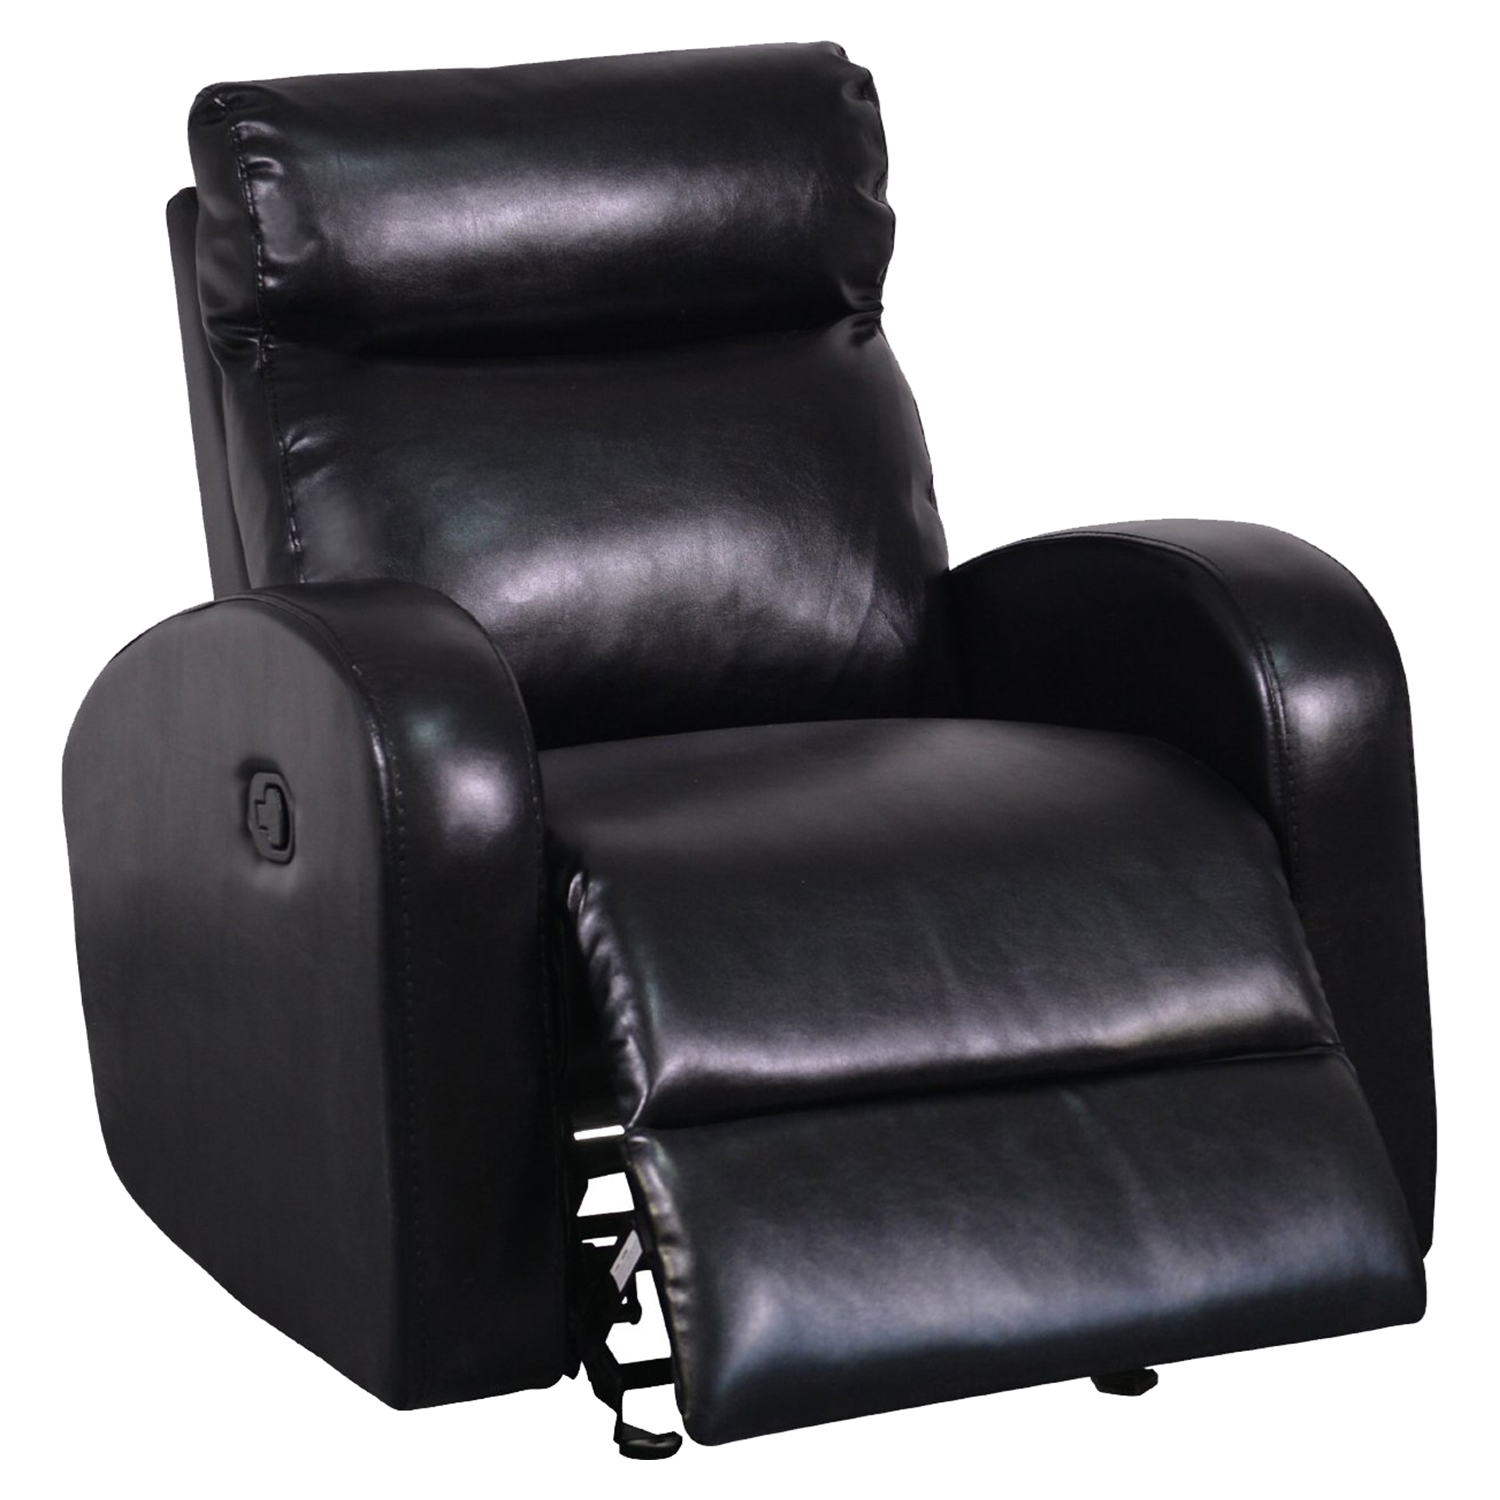 Genesis Glider Recliner Chair in Black